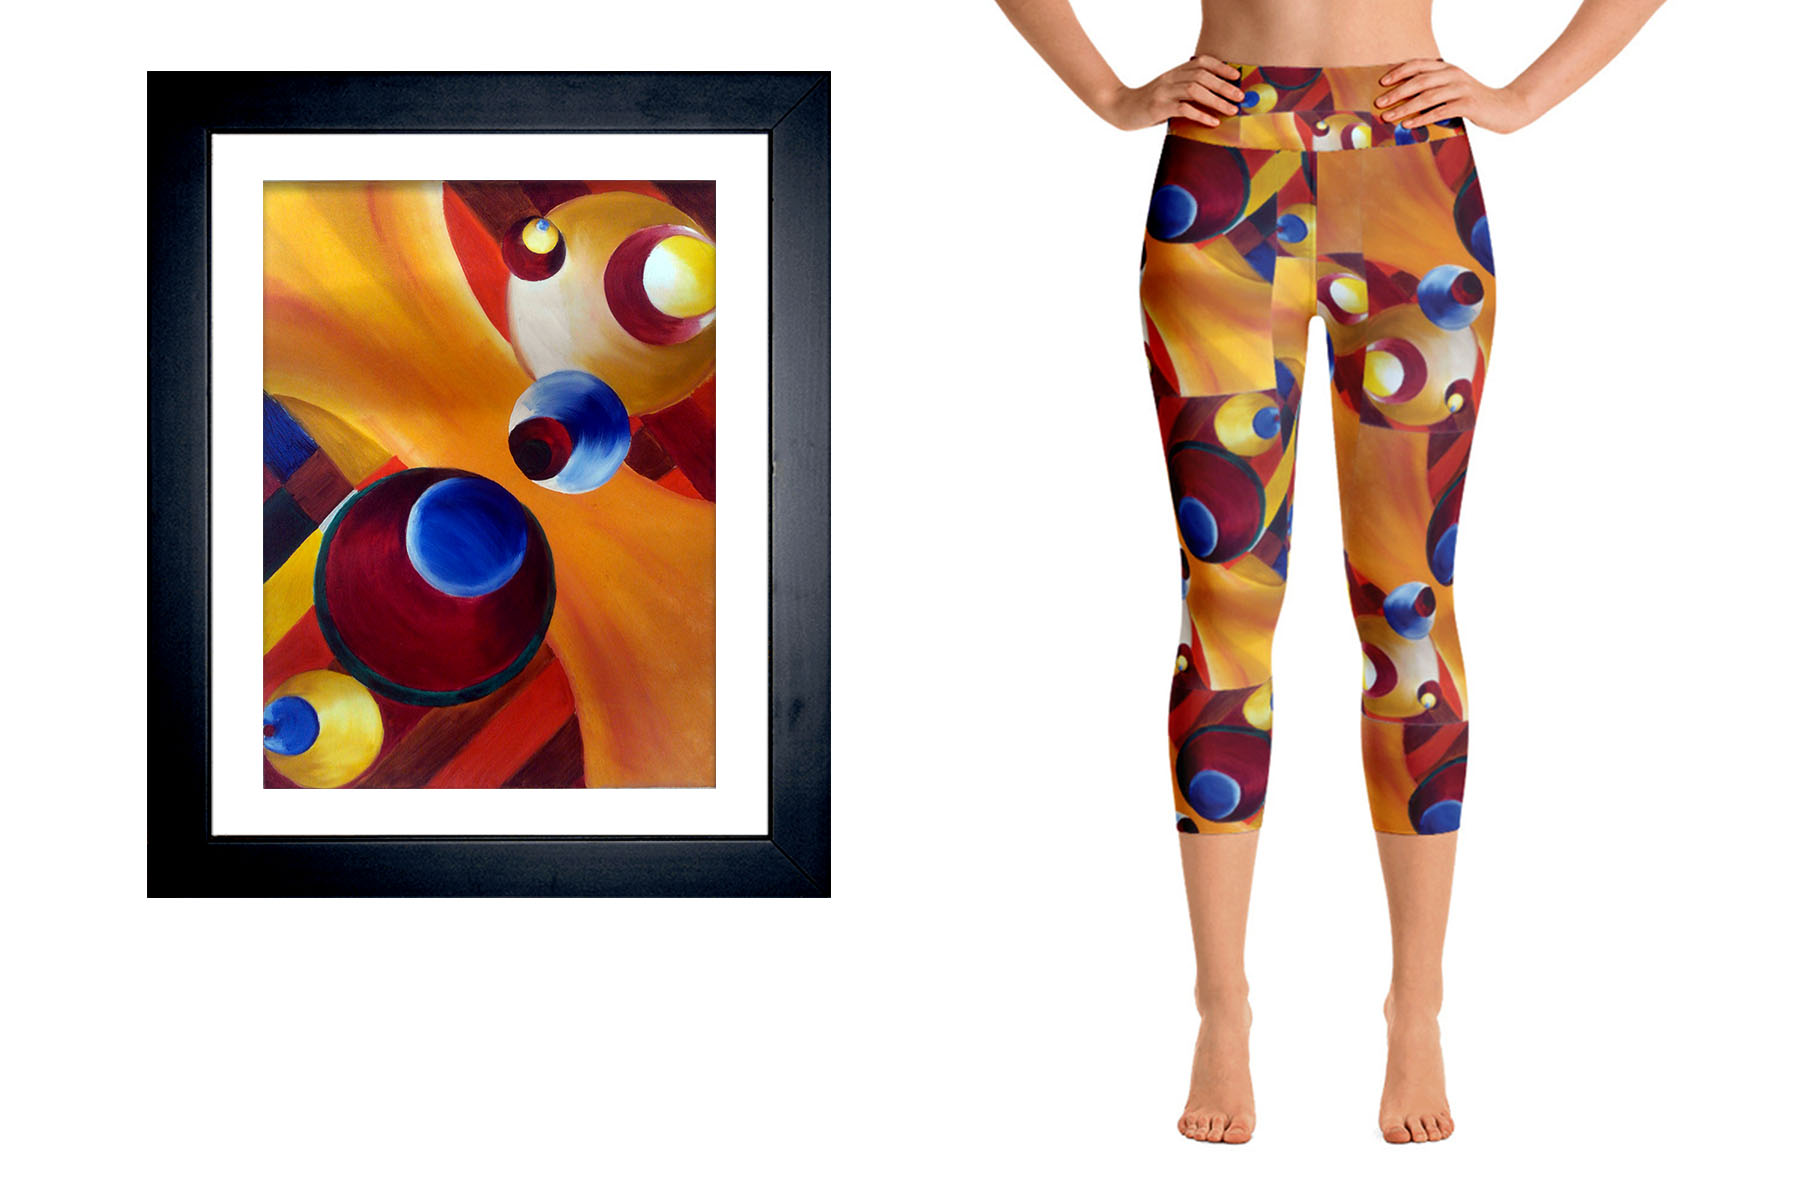 Abstract, Artwork on clothing, Gold, Blue, Red, Yellow